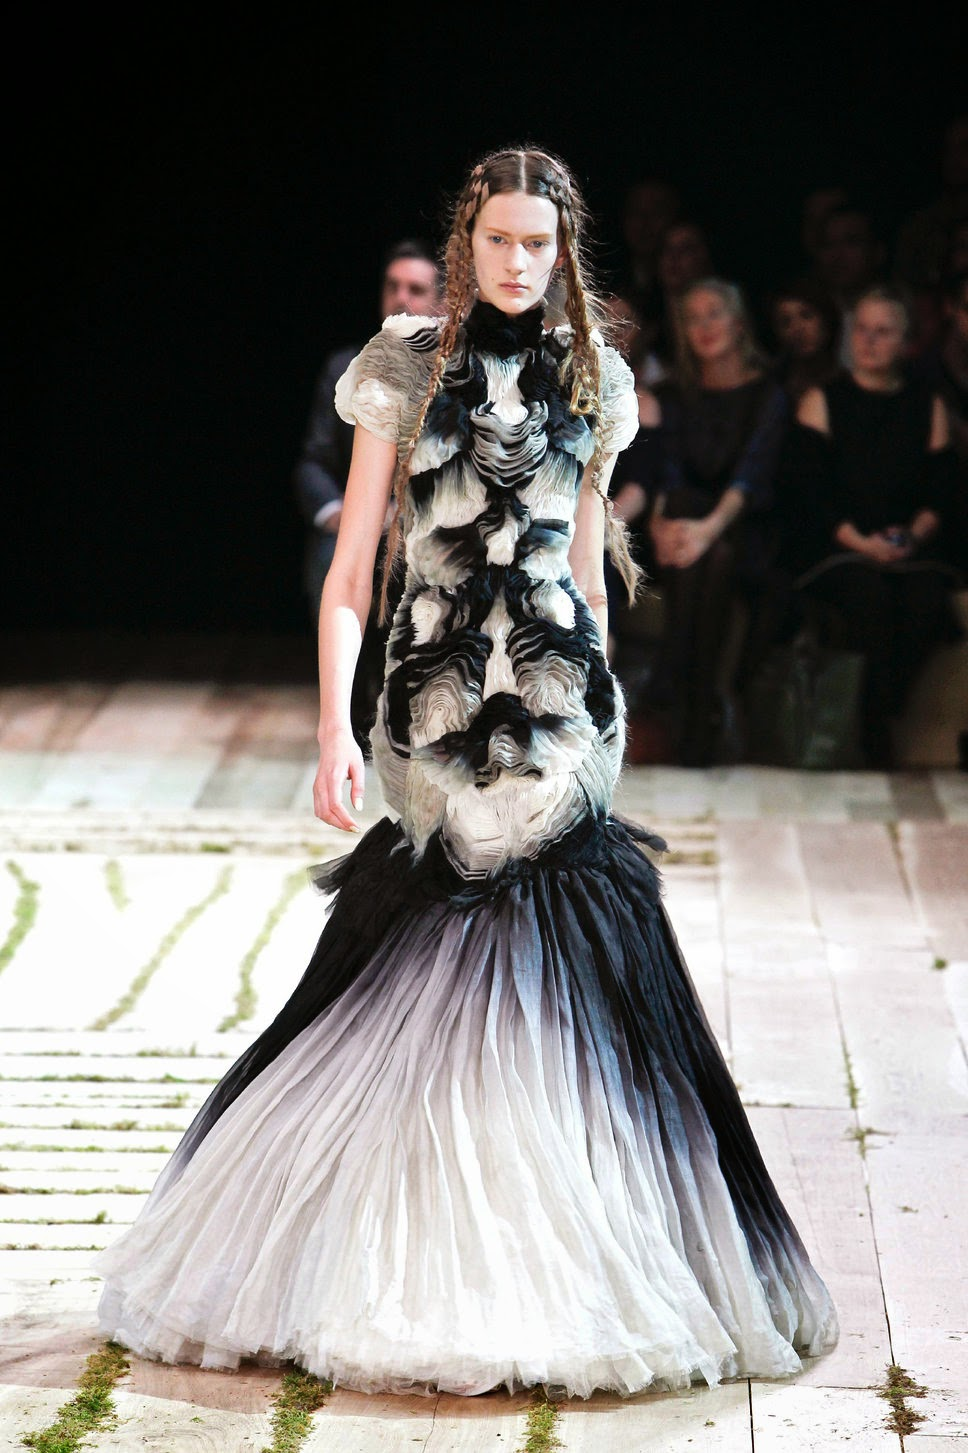 Visit Biography.com and explore the world of high couture through the life and work of English fashion designer Alexander McQueen, articles by http://1styahoo.blogspot.com/.